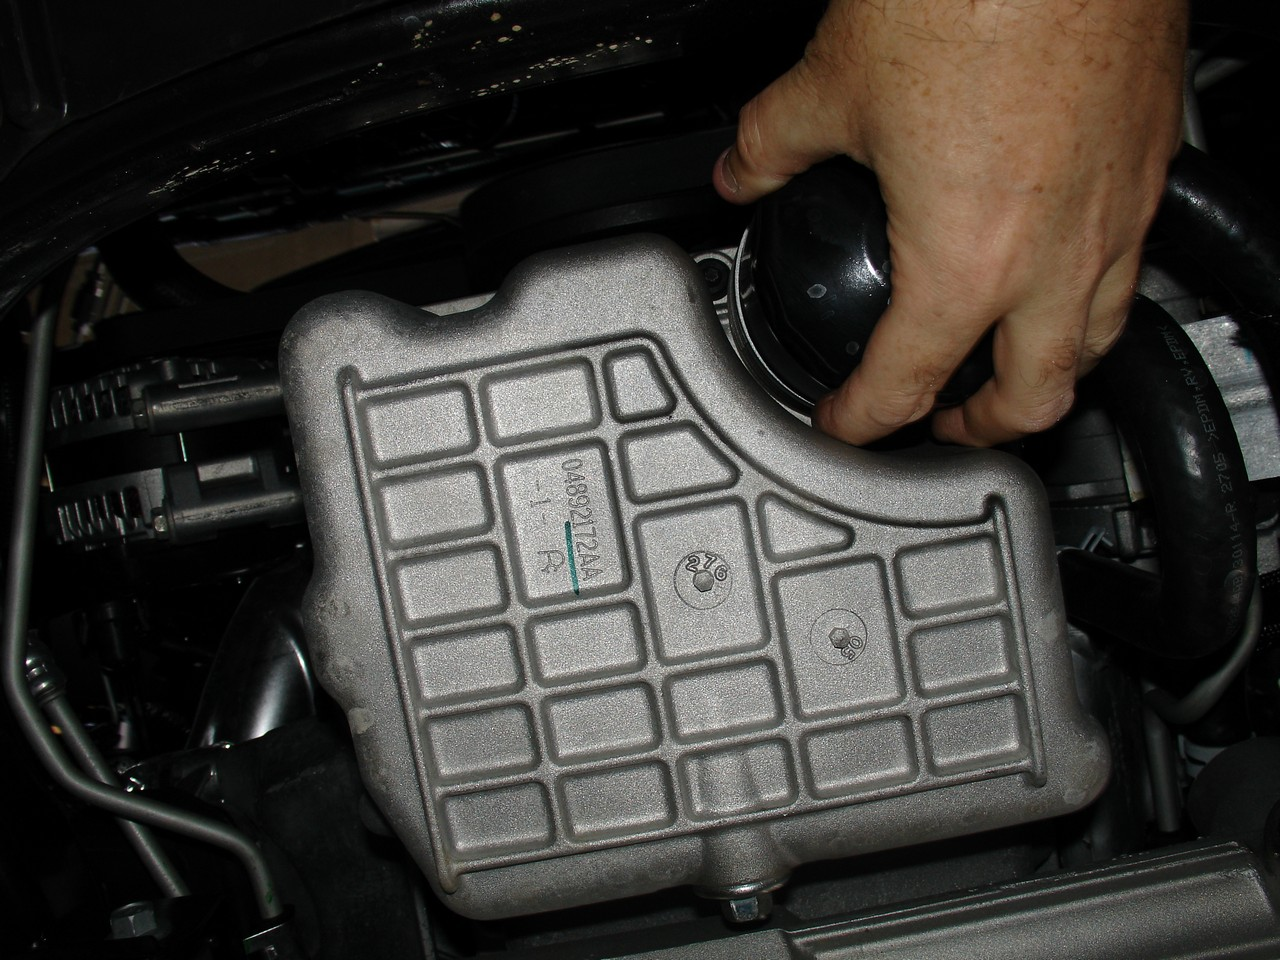 With the splash guard out of the way, you can see the oil pan and filter. I  try to get it off by hand, but it won't budge.